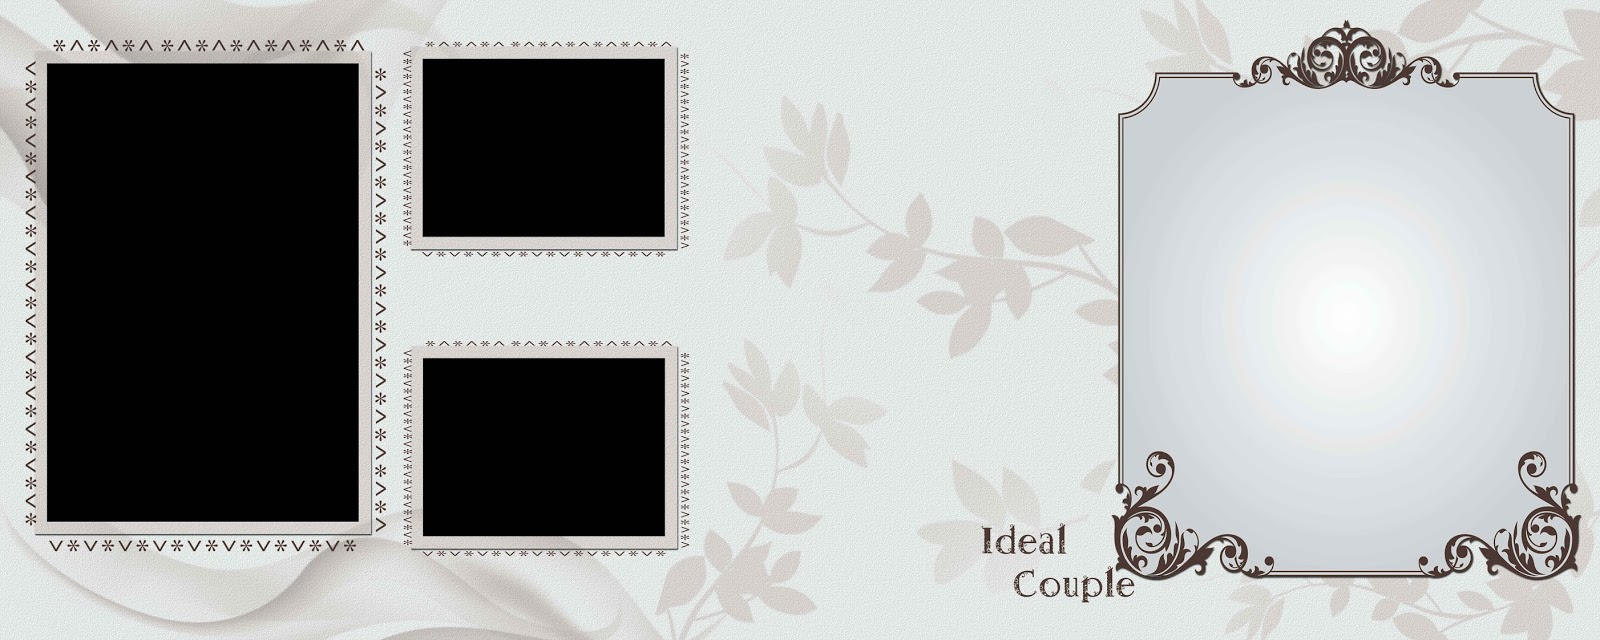 Free Download Wedding Album Psd Templates 12x36 Collection ...